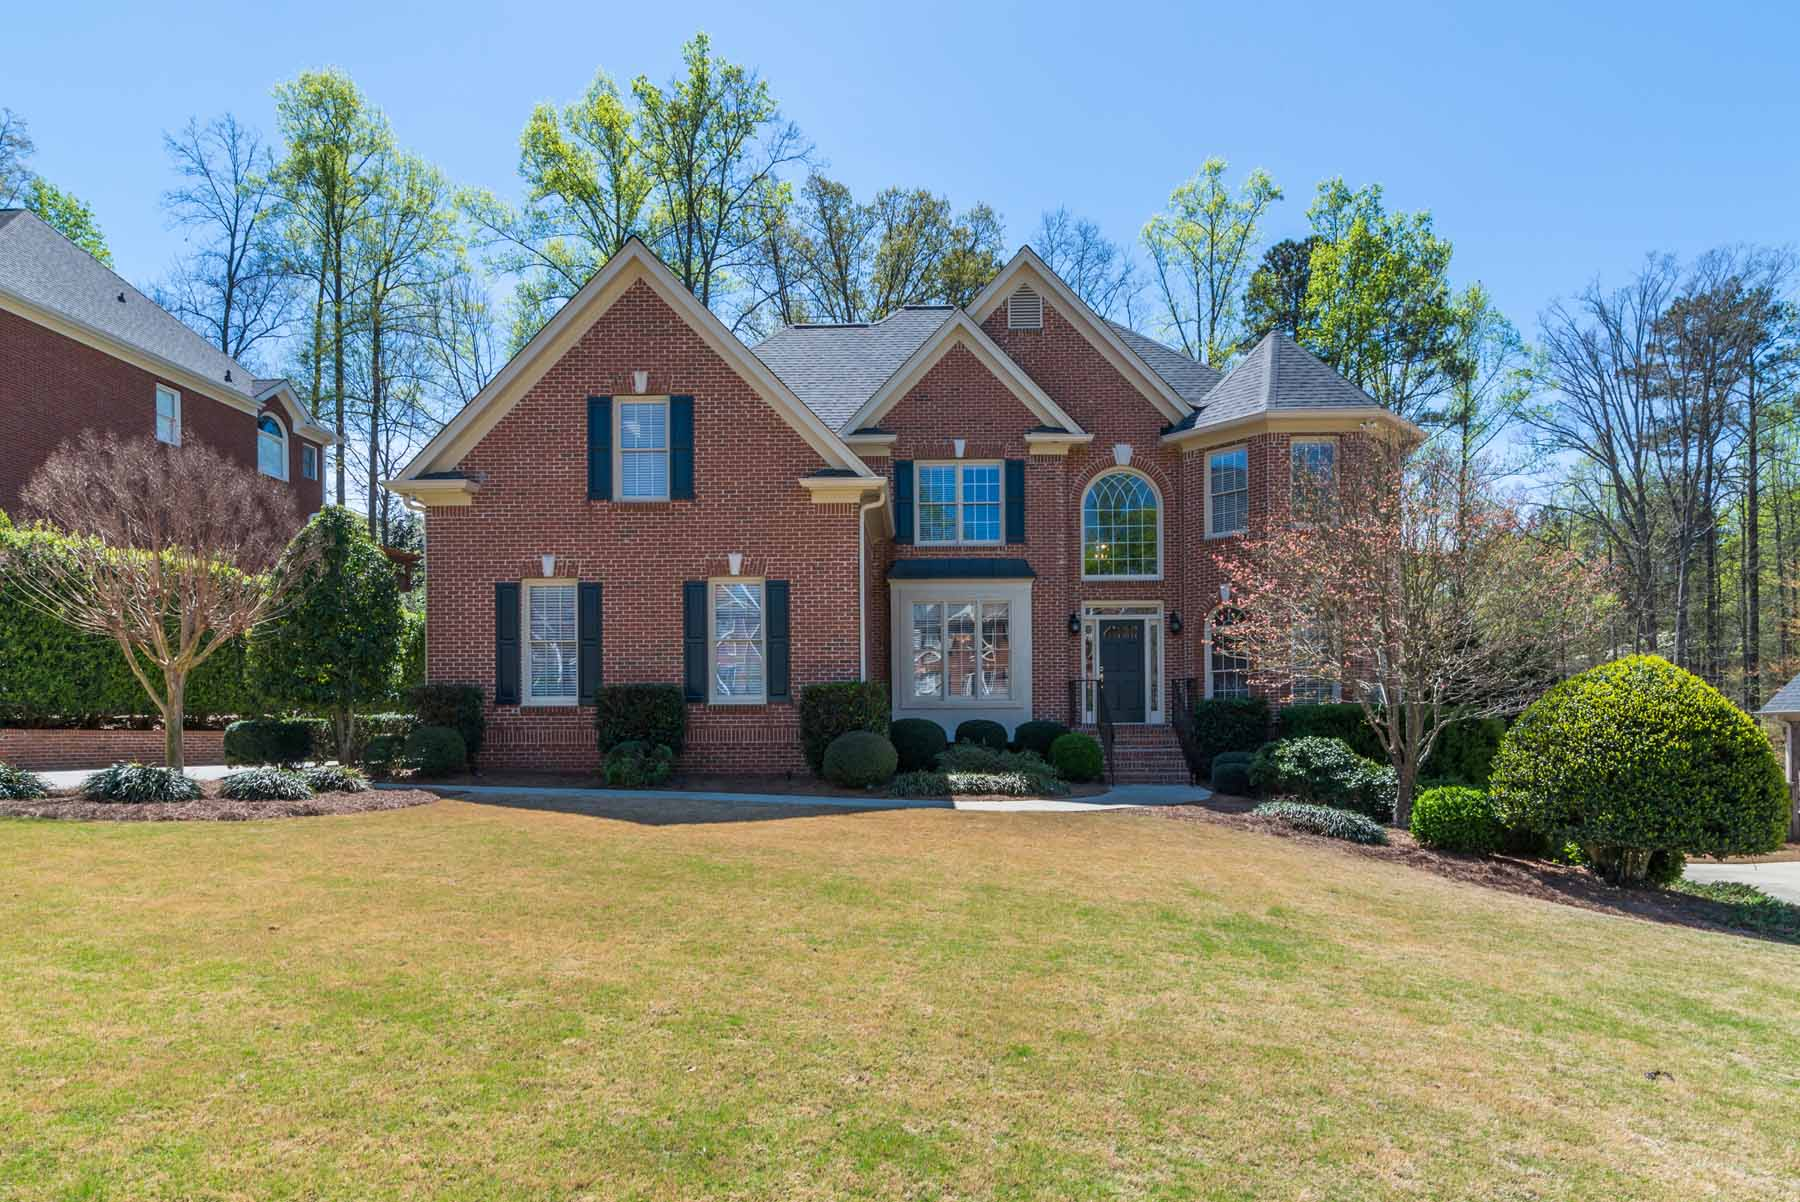 Single Family Home for Sale at Brick Traditional in Three Chimneys Farm 4285 Woodward Way Cumming, Georgia, 30041 United States